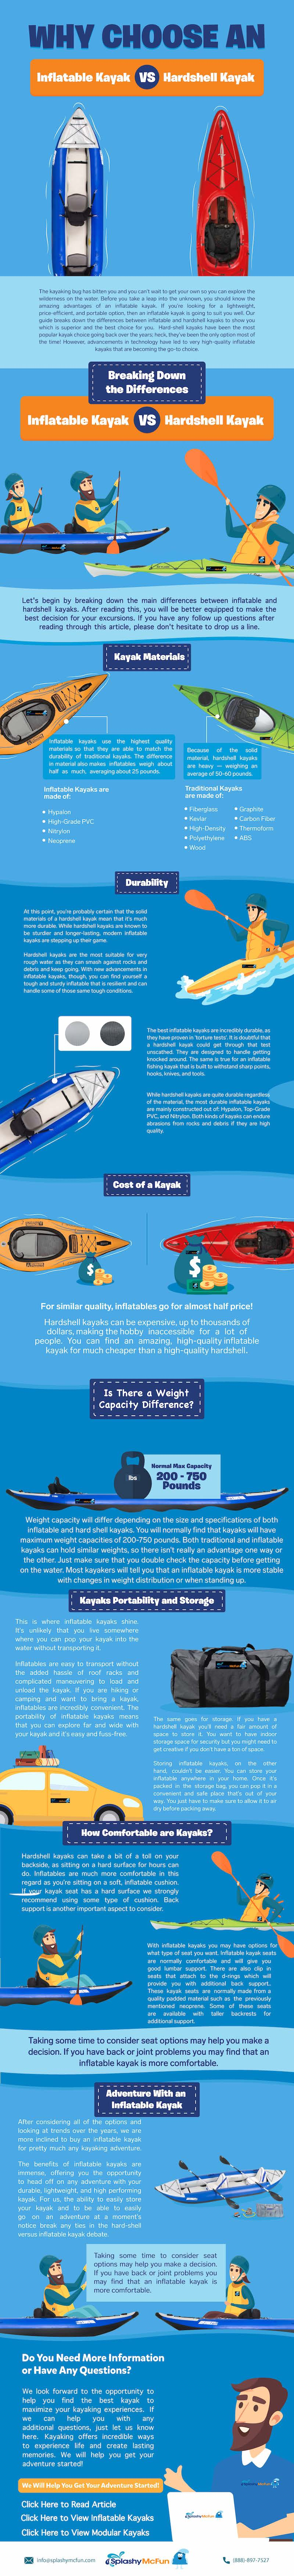 What is the Difference between an Inflatable Kayak and a Hard Shelled Kayak